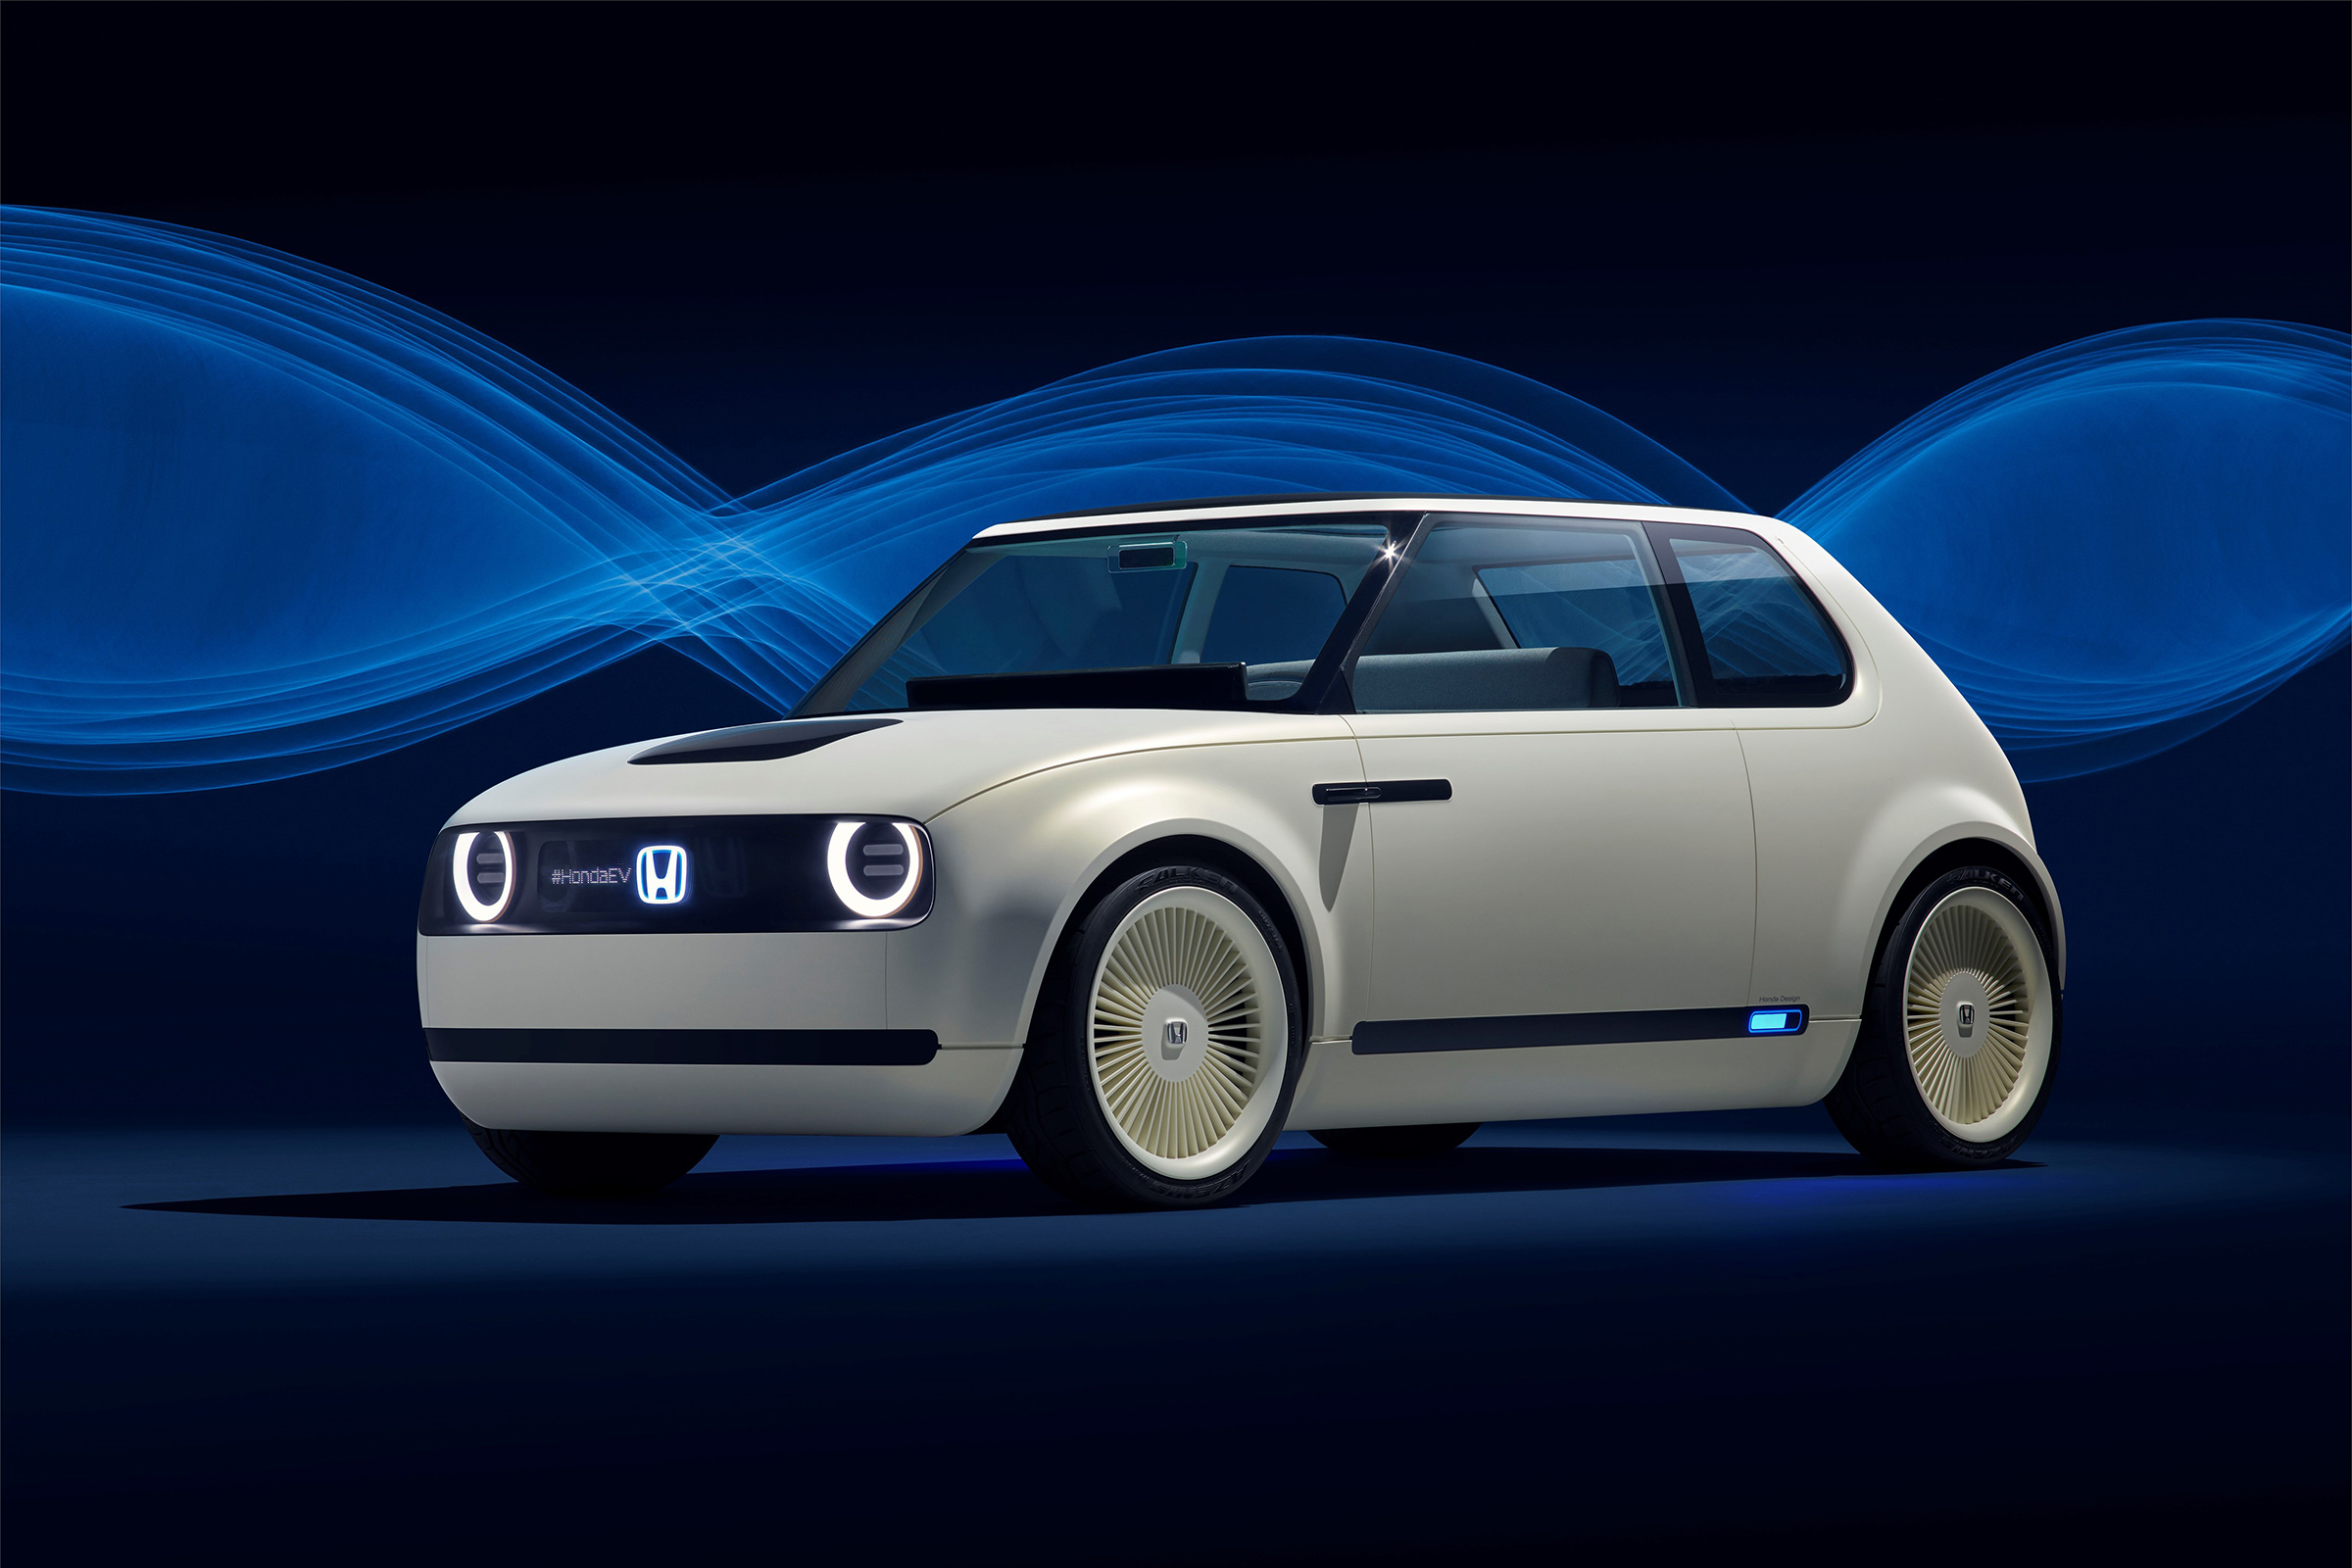 As of yet there are few technical specifications regarding how much range or power the battery pack provides however honda did say that the urban ev is